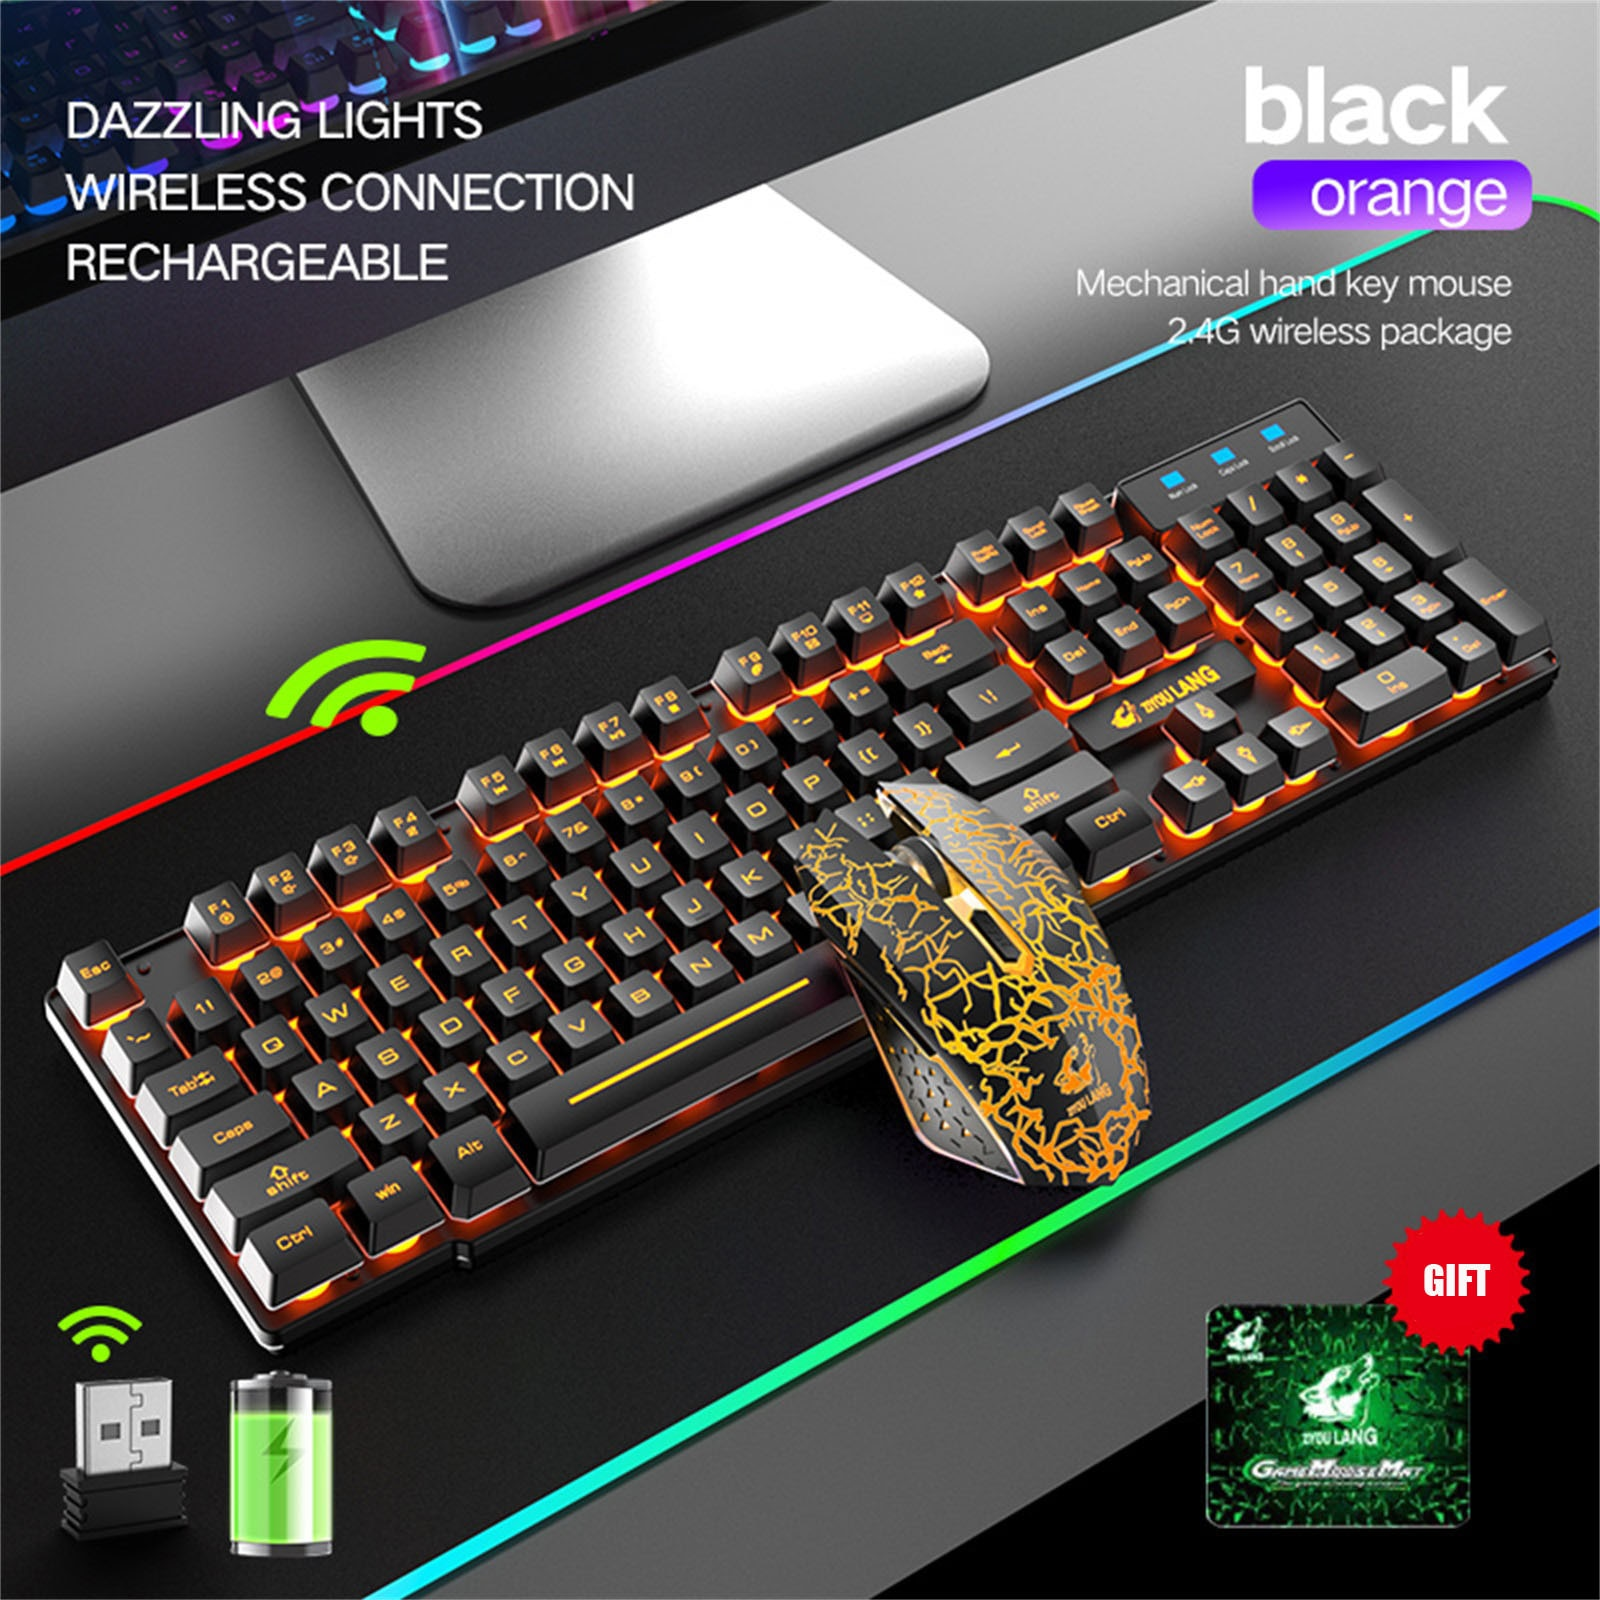 2.4Ghz Bluetooth Wireless Gaming Keyboard and Mouse Combo Set with Rainbow LED Backlit Rechargeable Wireless Charging Keyboard enlarge